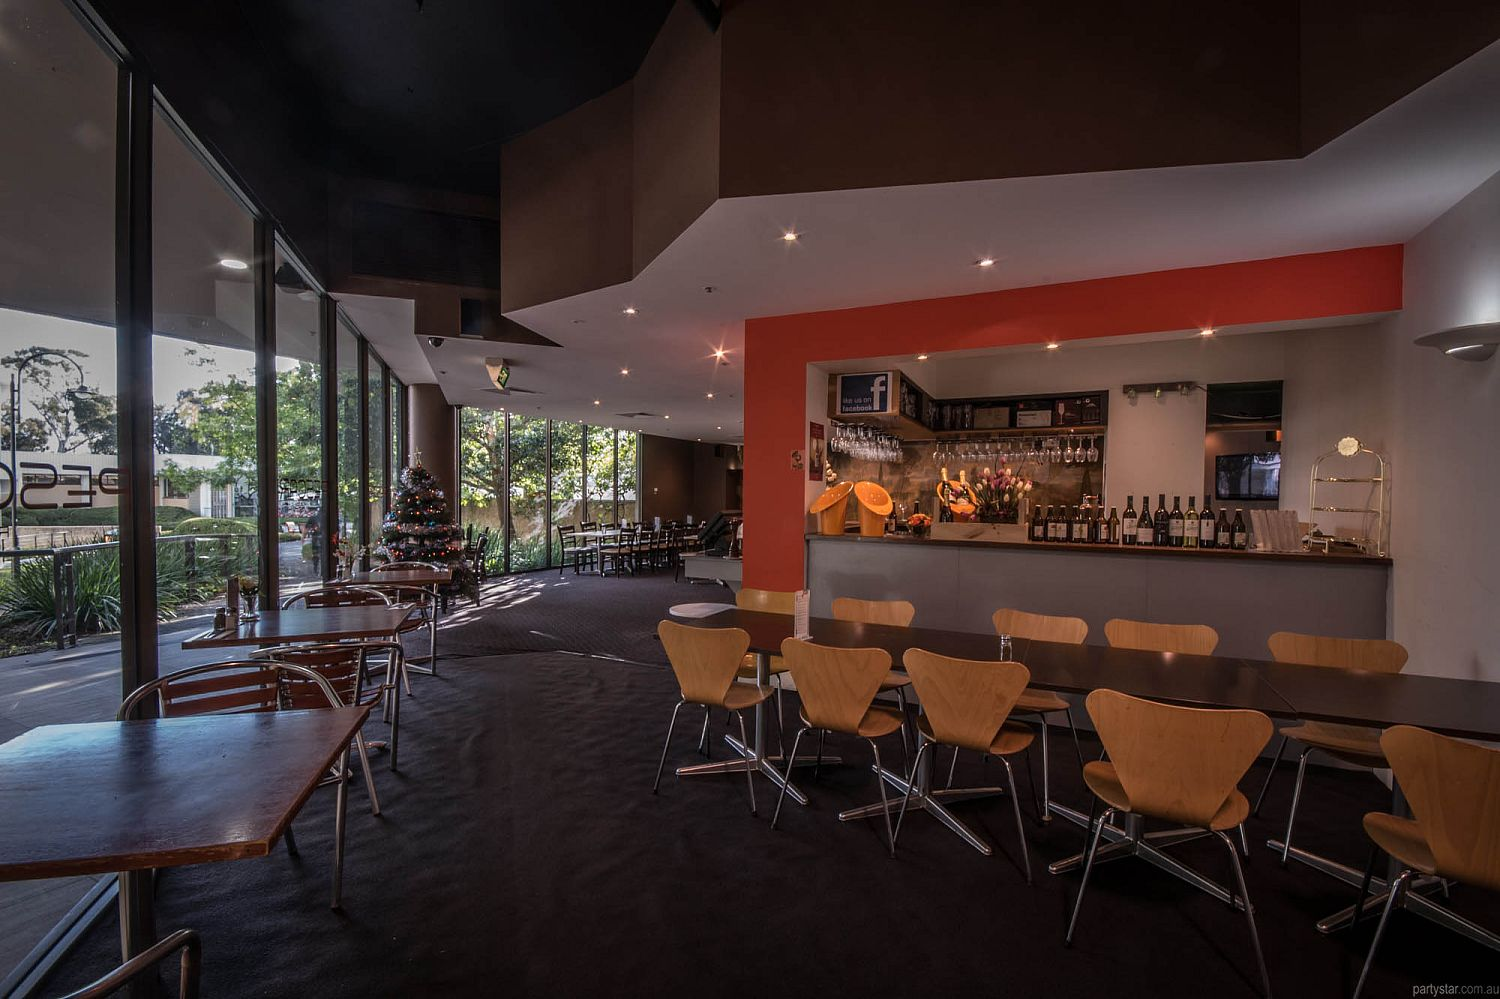 Pescare, Glen Waverley, VIC. Function Room hire photo #4